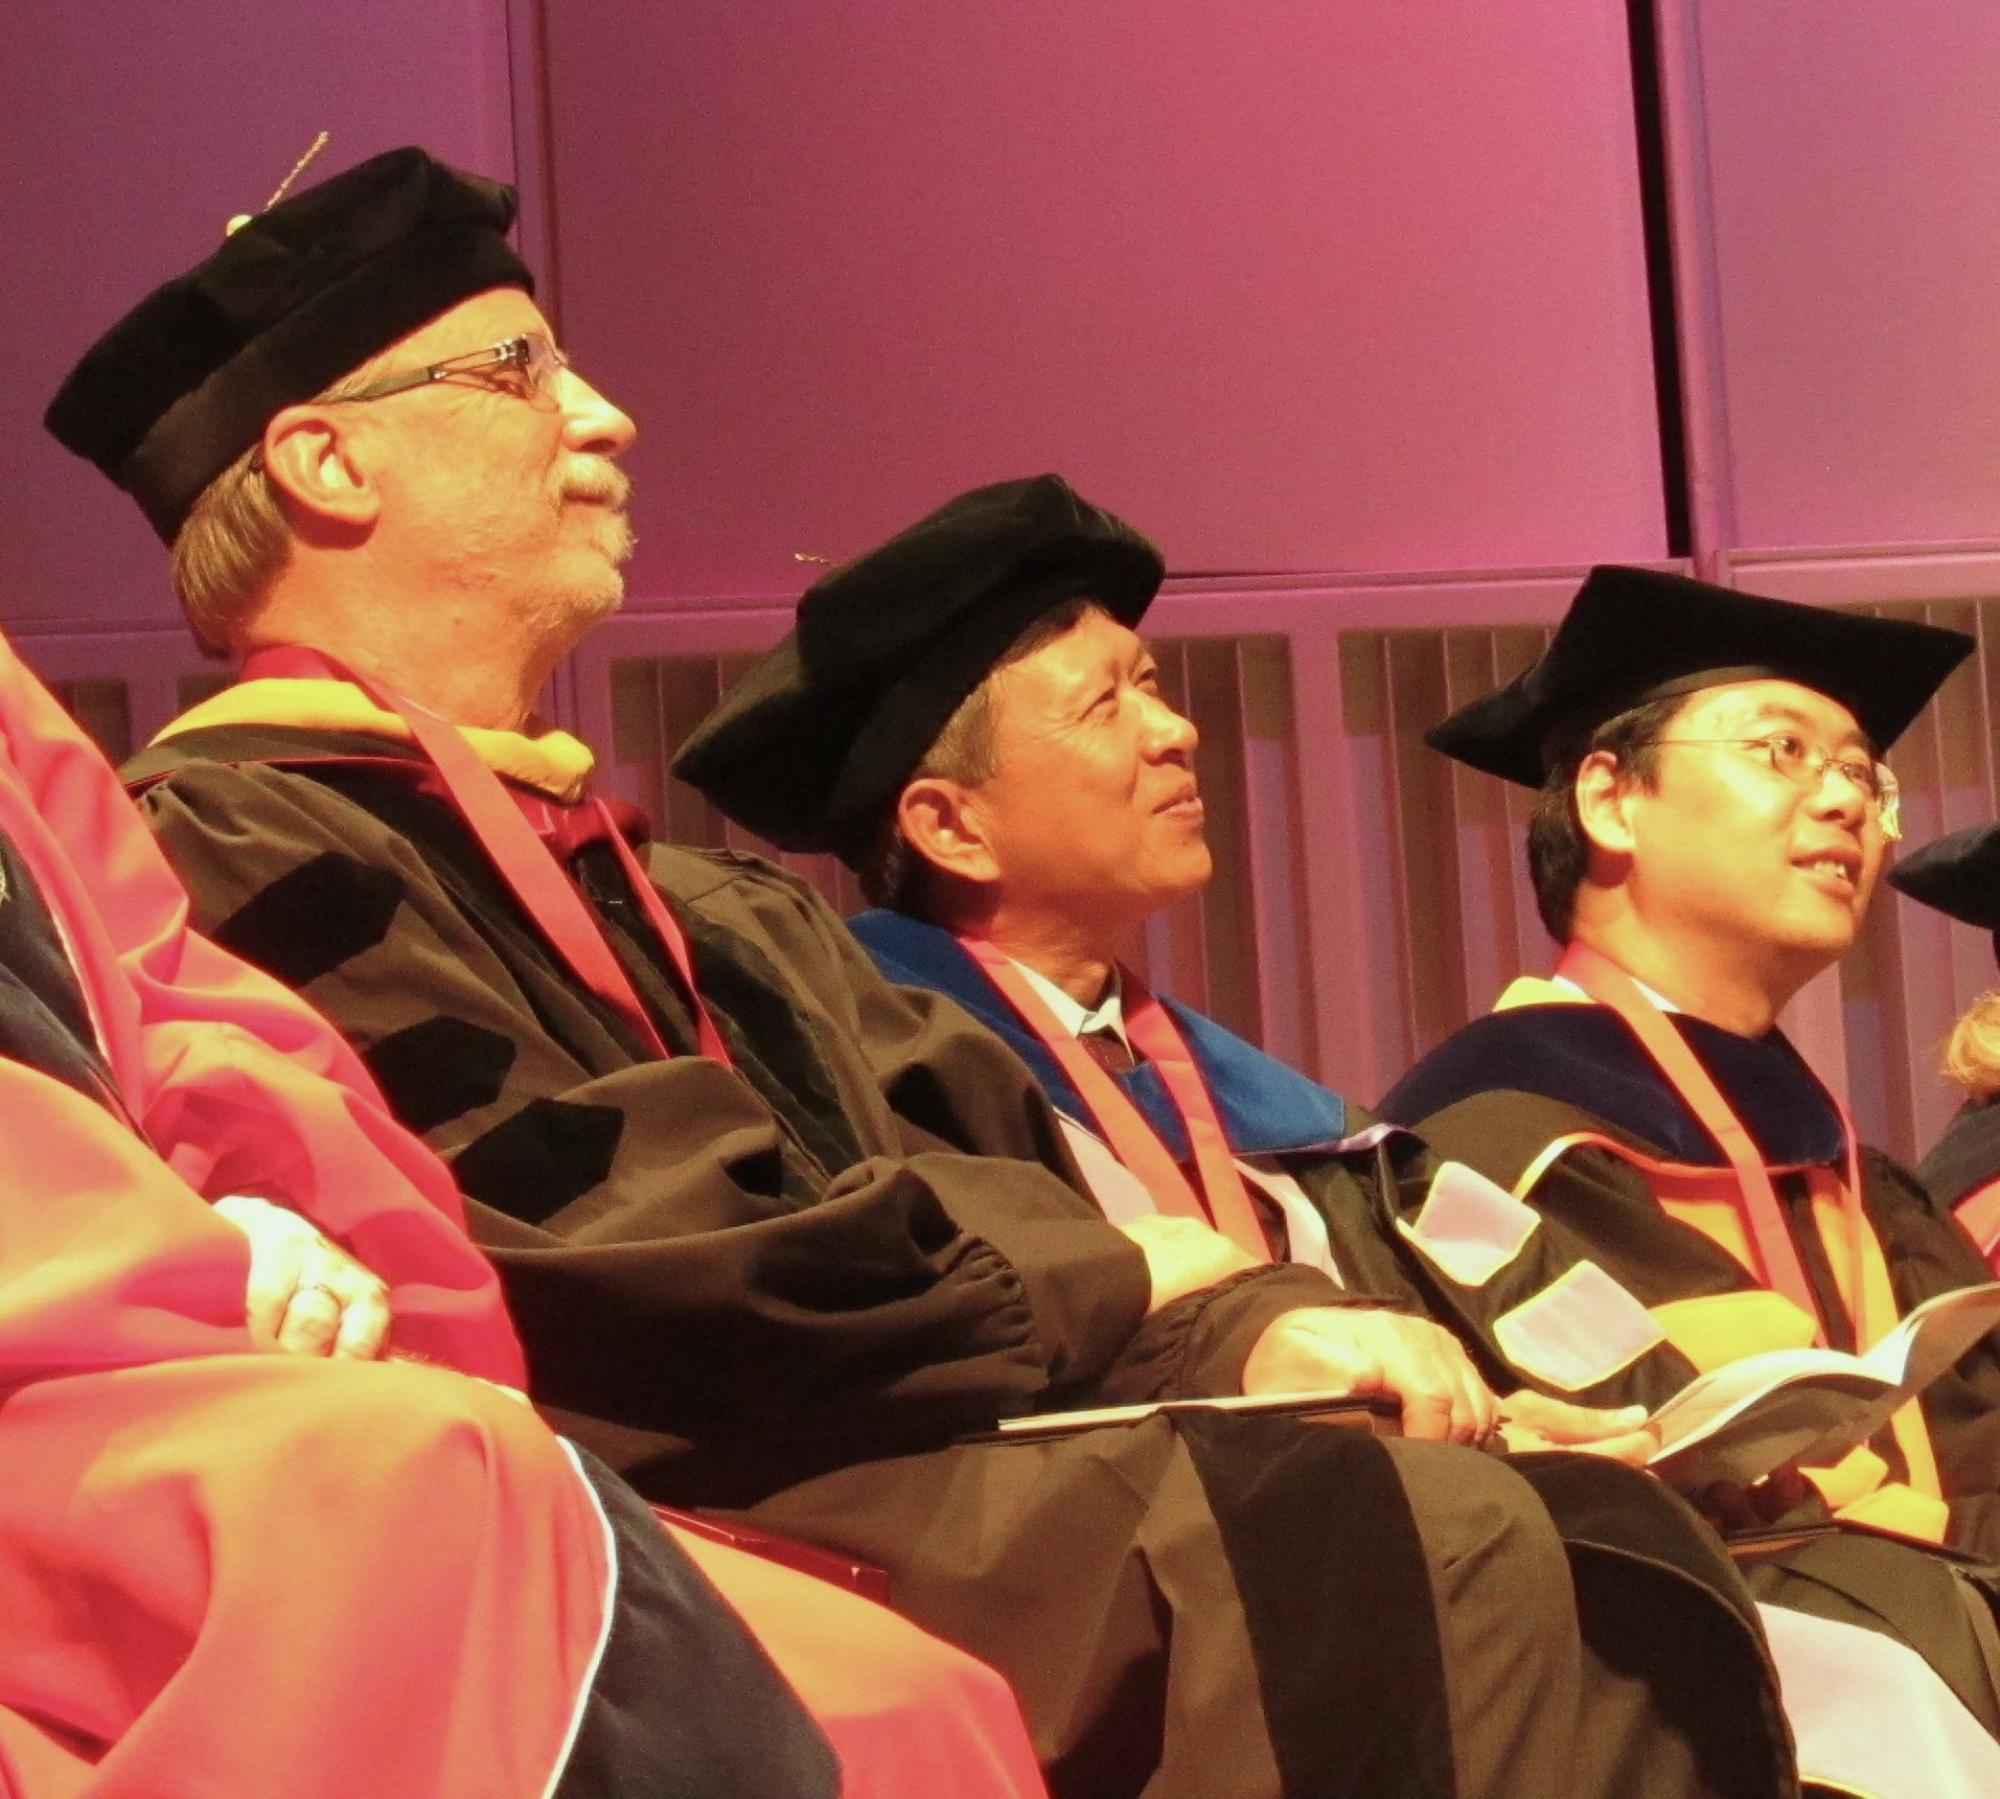 Three UA faculty members have been inducted as Regents' Professors: Neal R. Armstrong from the Department of Chemistry and Biochemistry, Hsinchun Chen from the UA Eller College of Management, and Xiaohui Fan from the Department of Astronomy.